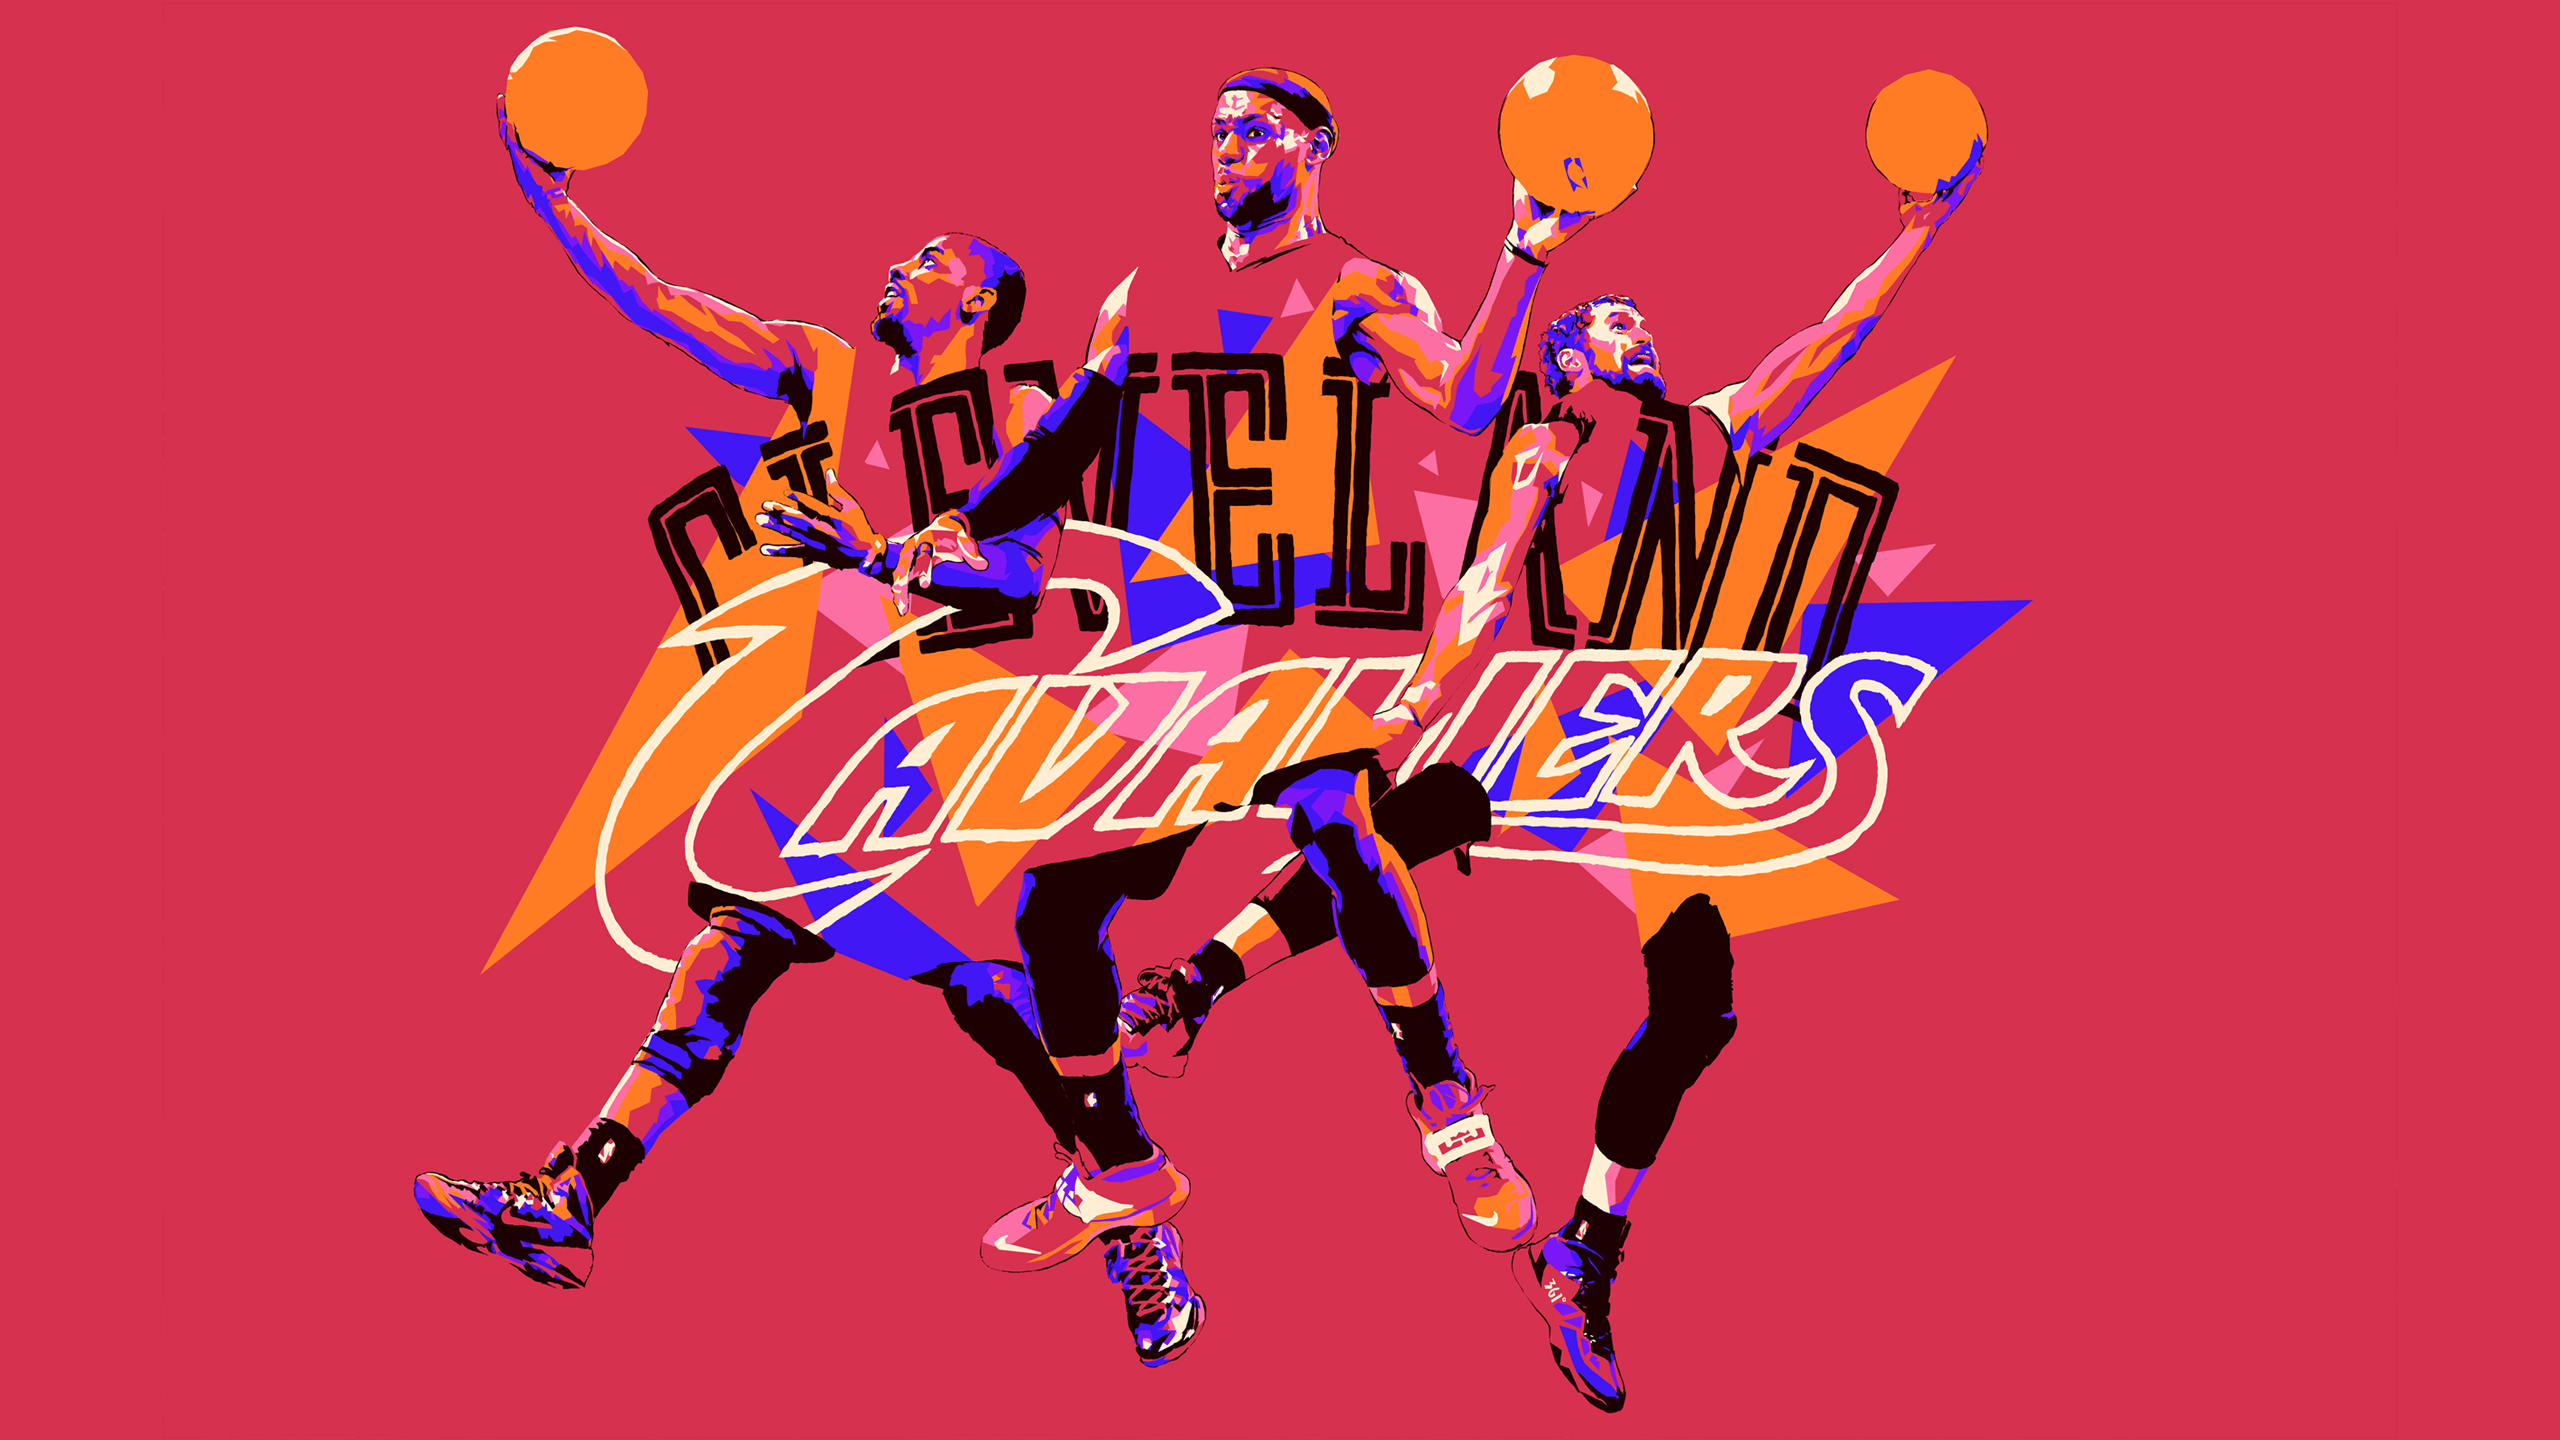 Cleveland Cavaliers 2018 Wallpapers